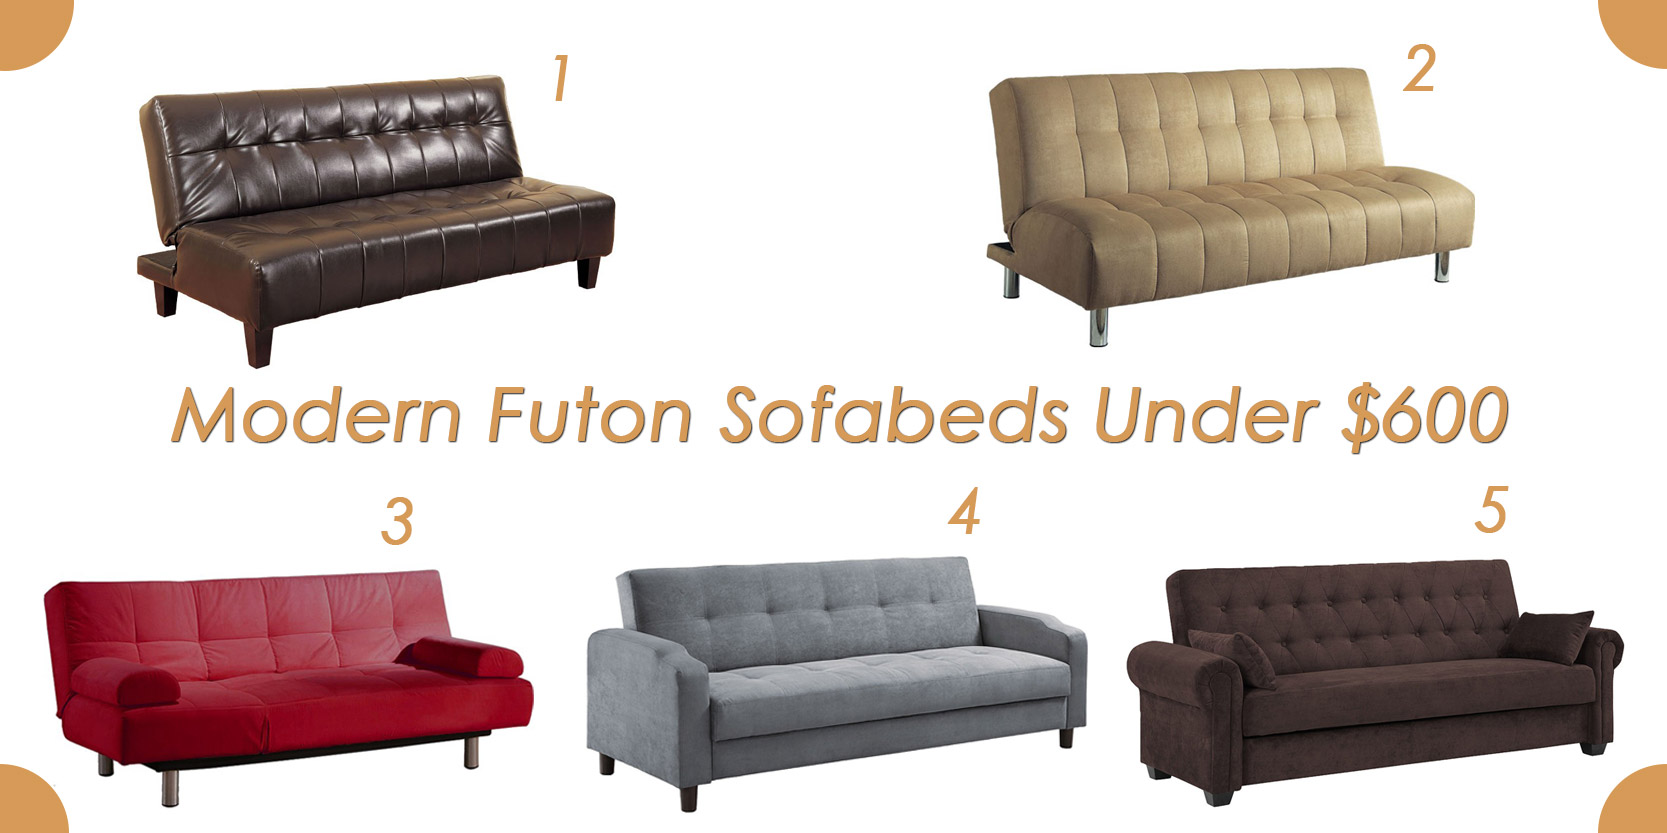 1 Modern Futon Sleeper Java